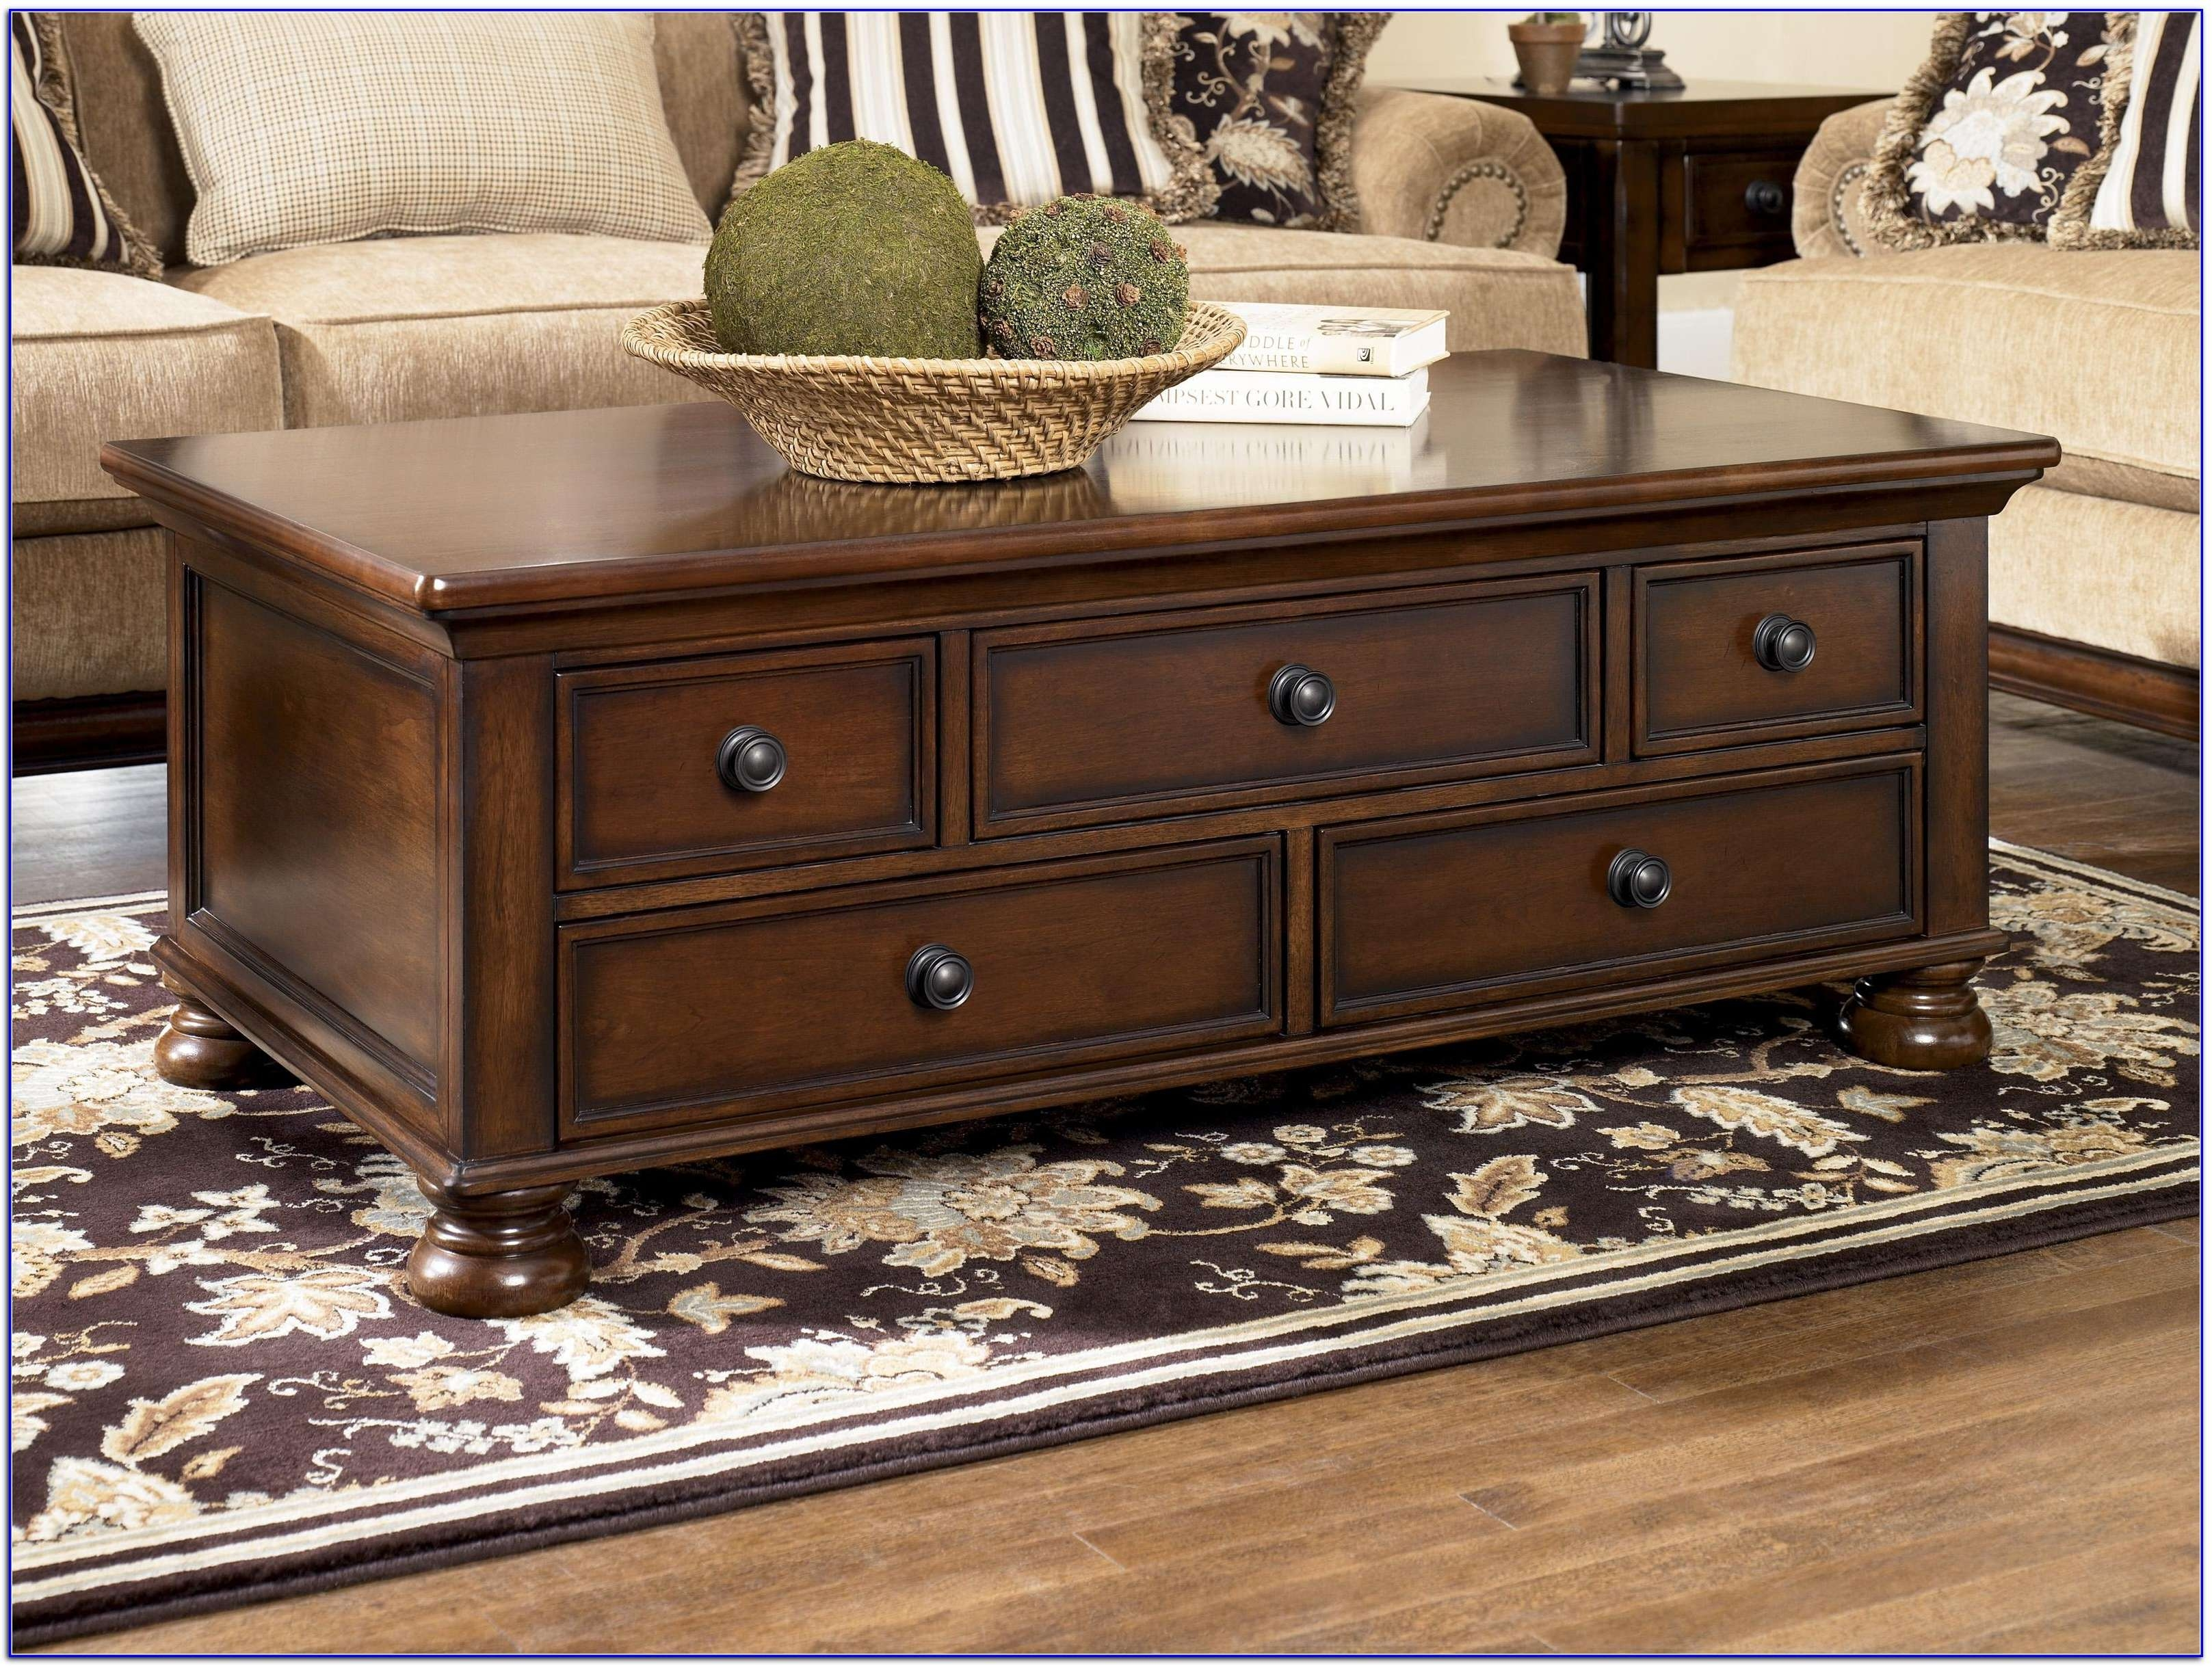 Trendy Square Coffee Tables With Storage Cubes With Coffee Tables : Dark Wood Coffee Table Black Coffee Table' Rustic (View 11 of 20)